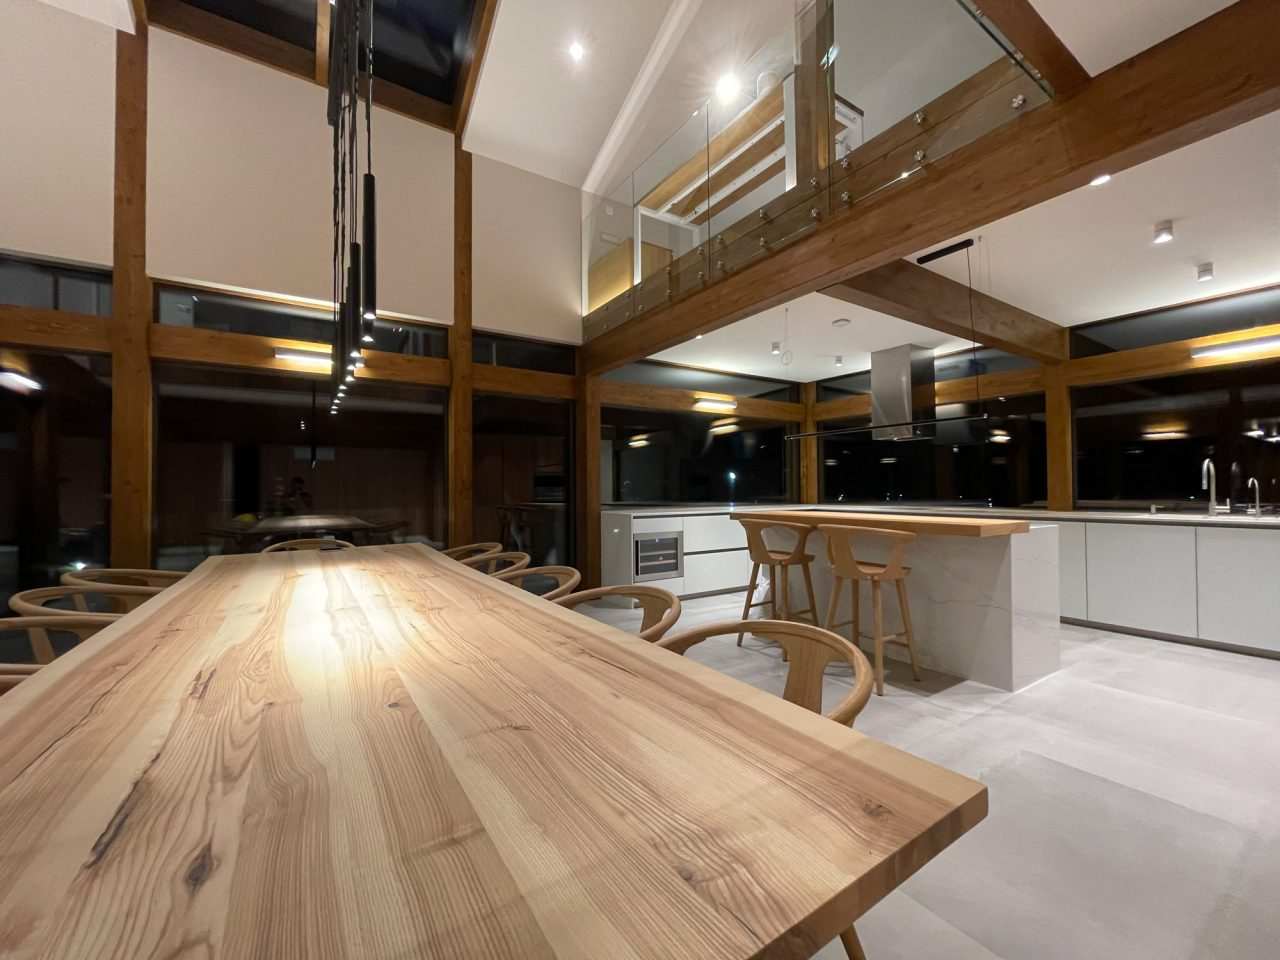 Hlass_house_KAGER - Hurii_38